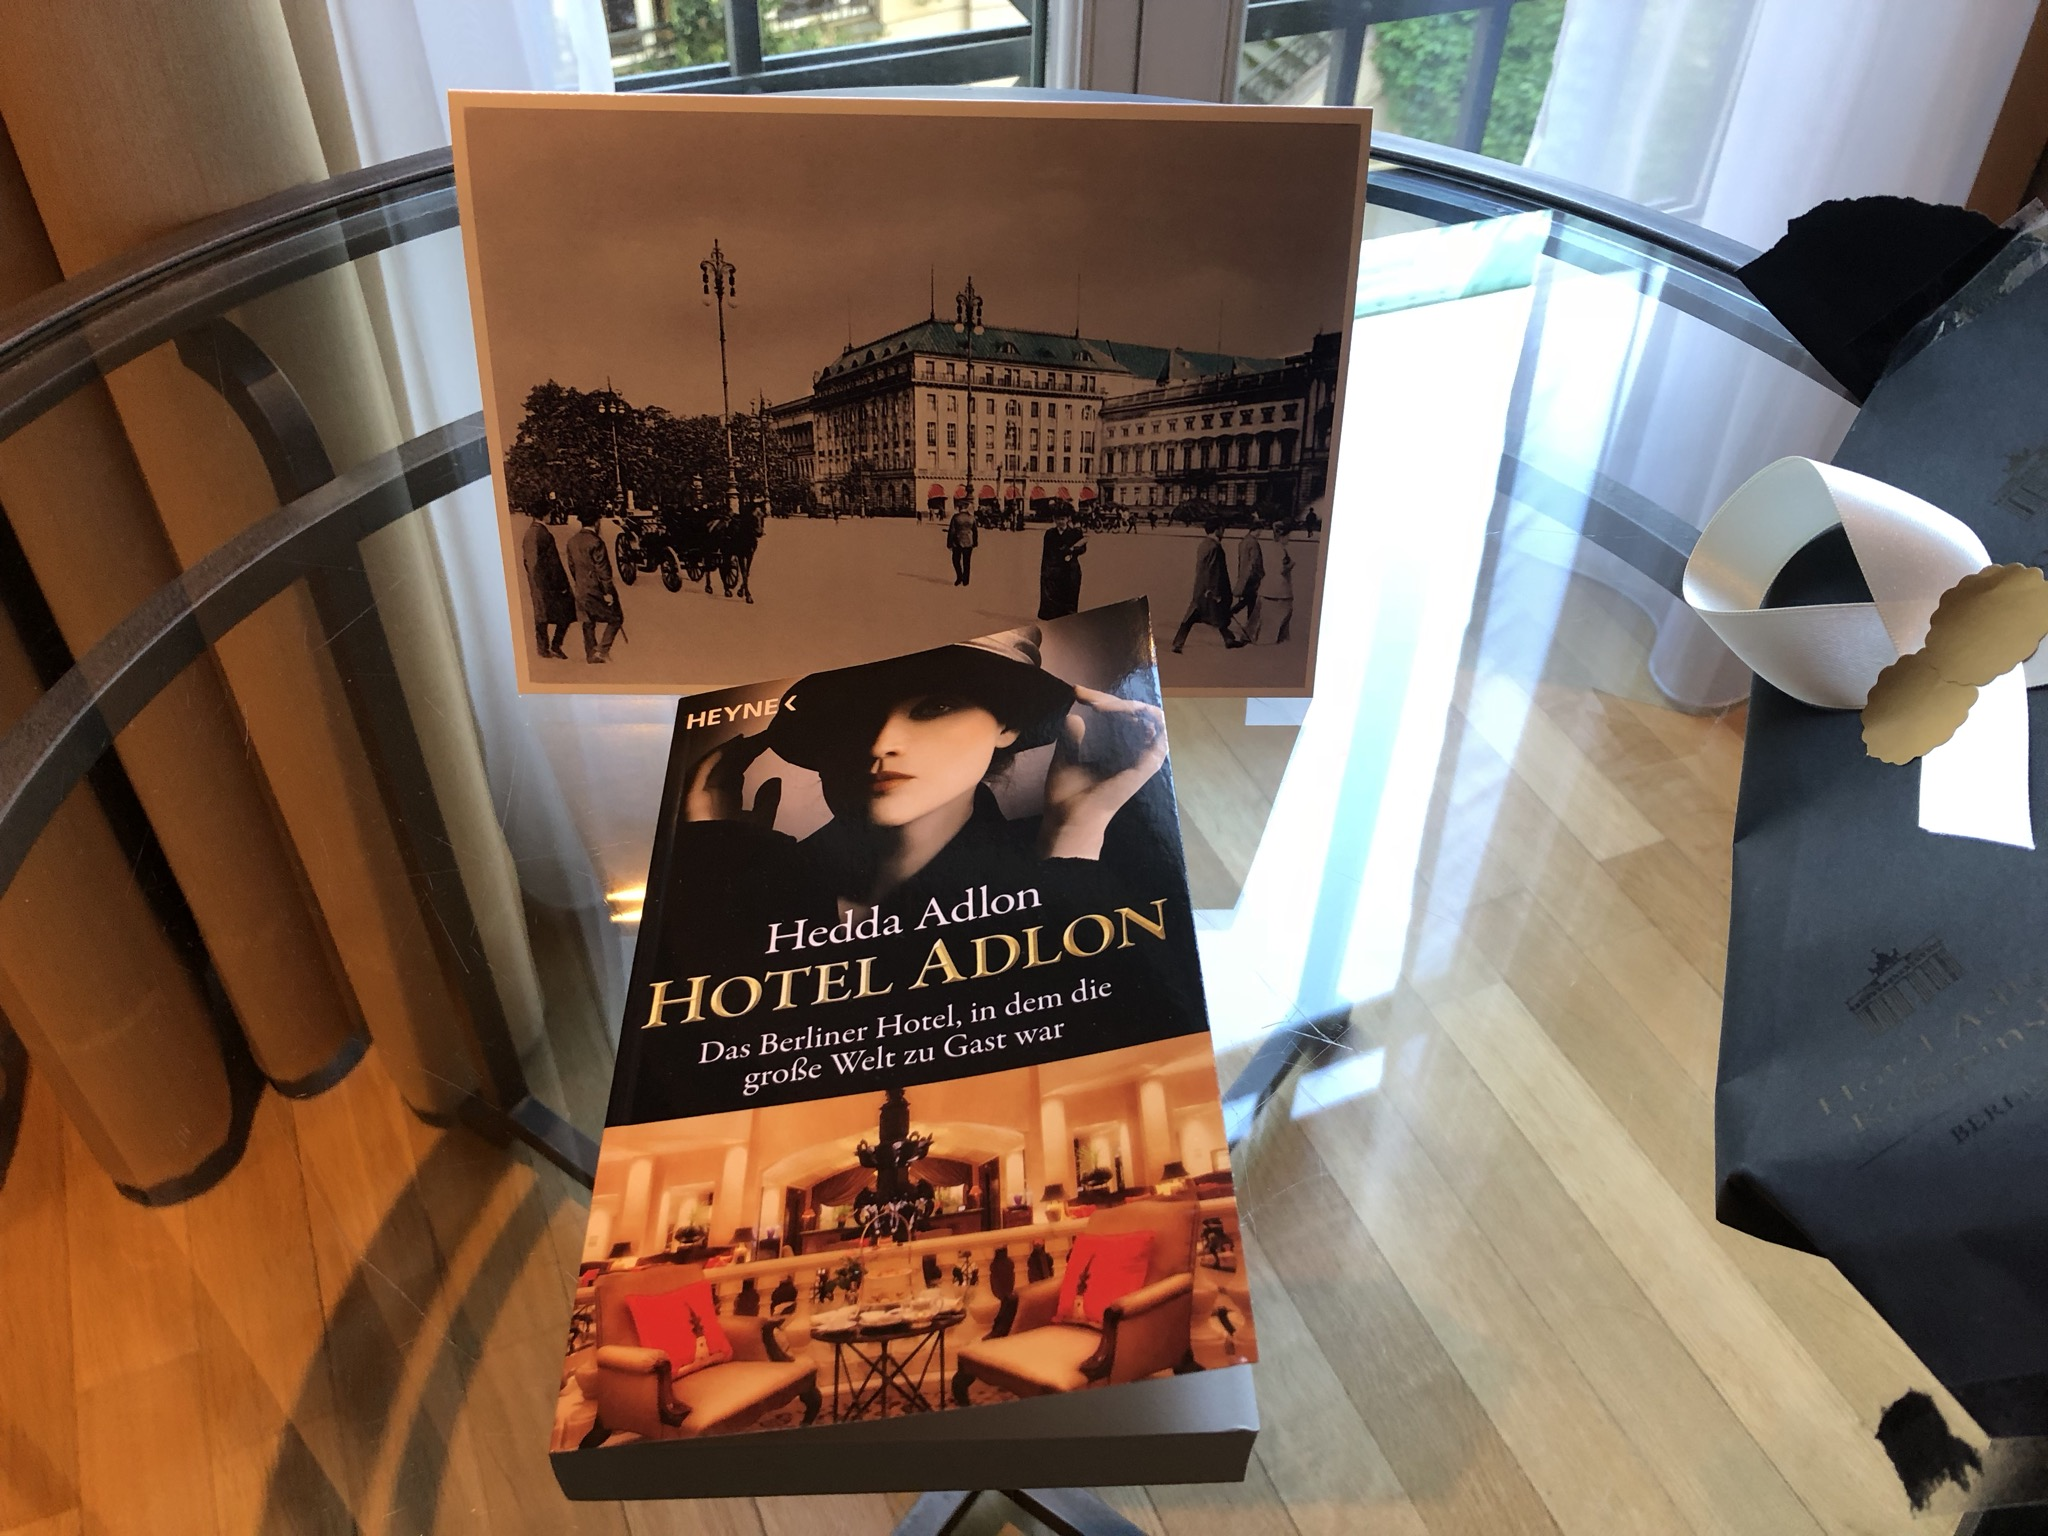 A nice gesture due to my LHW membership: book about the hotel's history told by a descendant of Lorenz Adlon and a nice old postcard